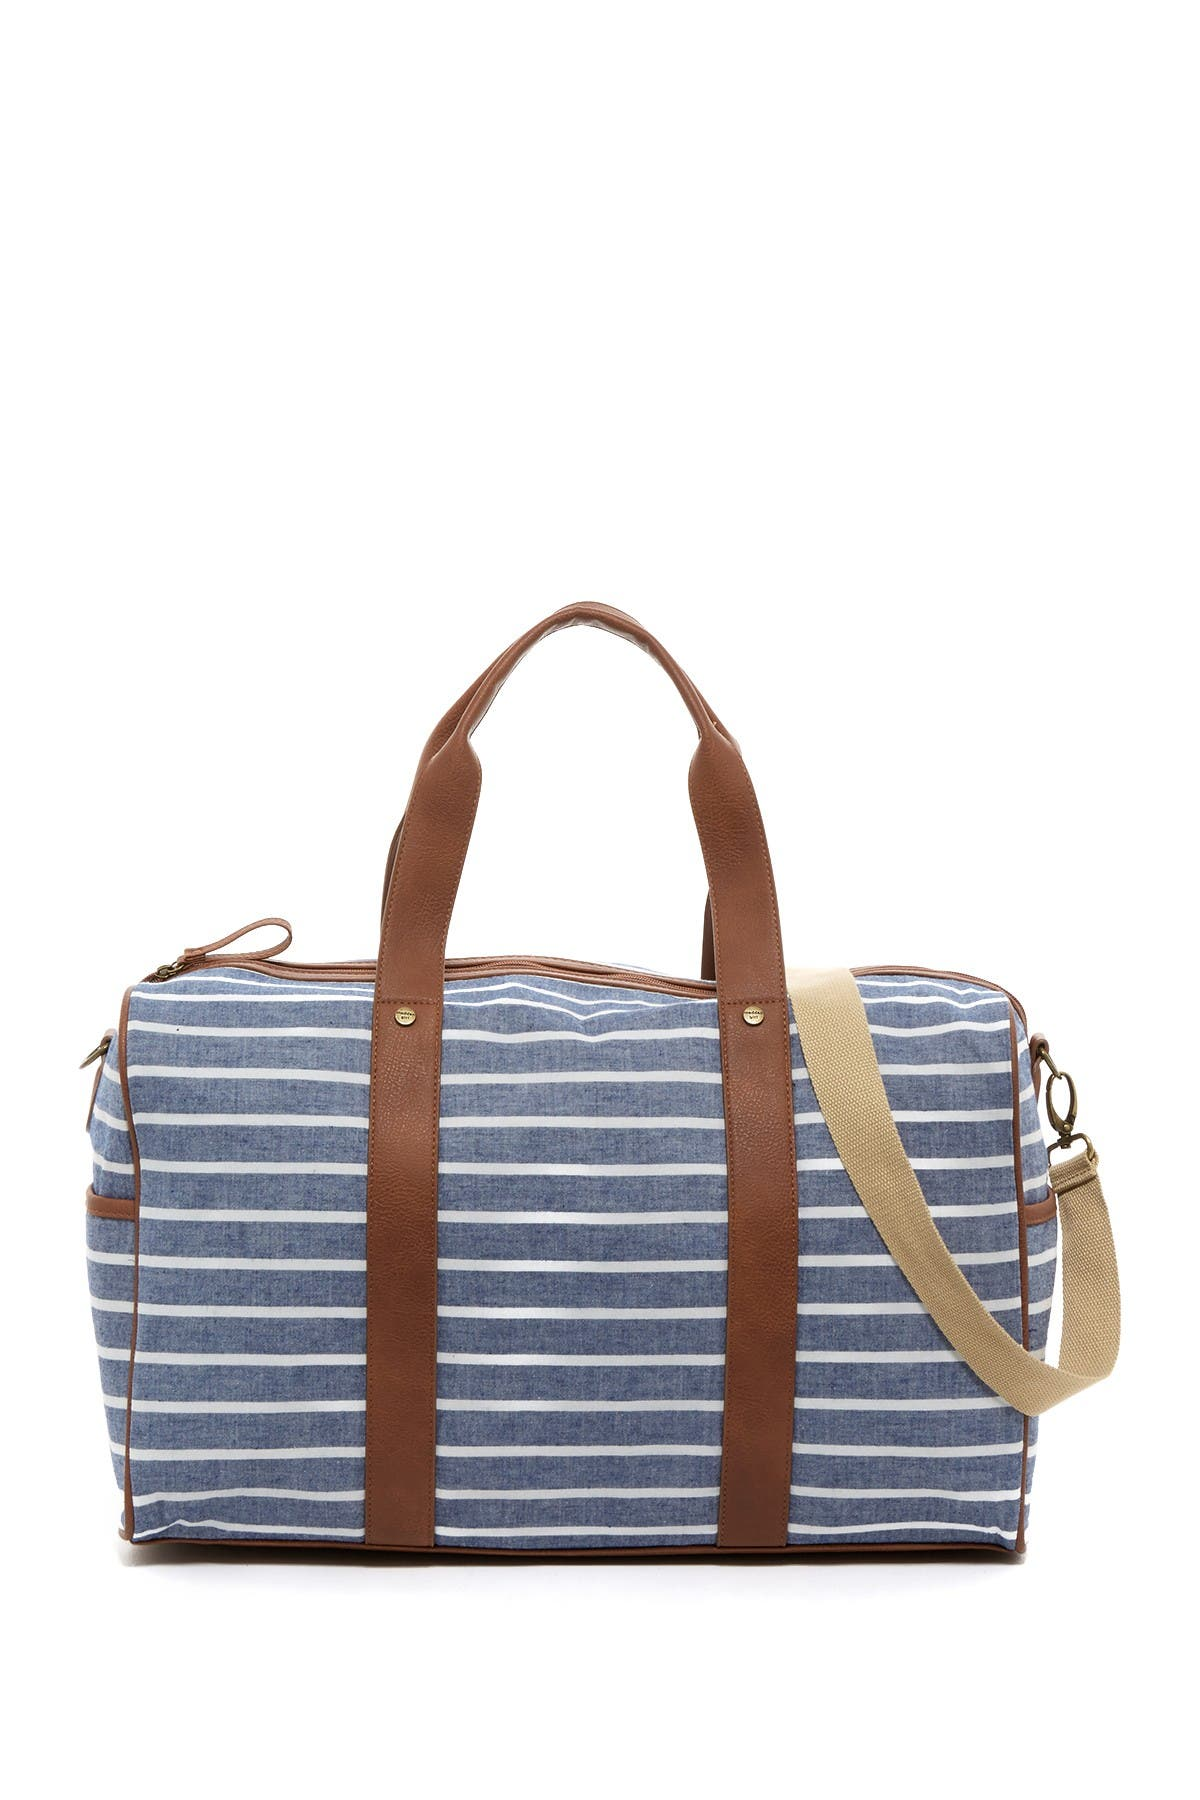 Image of Madden Girl Carry-On Weekend Bag